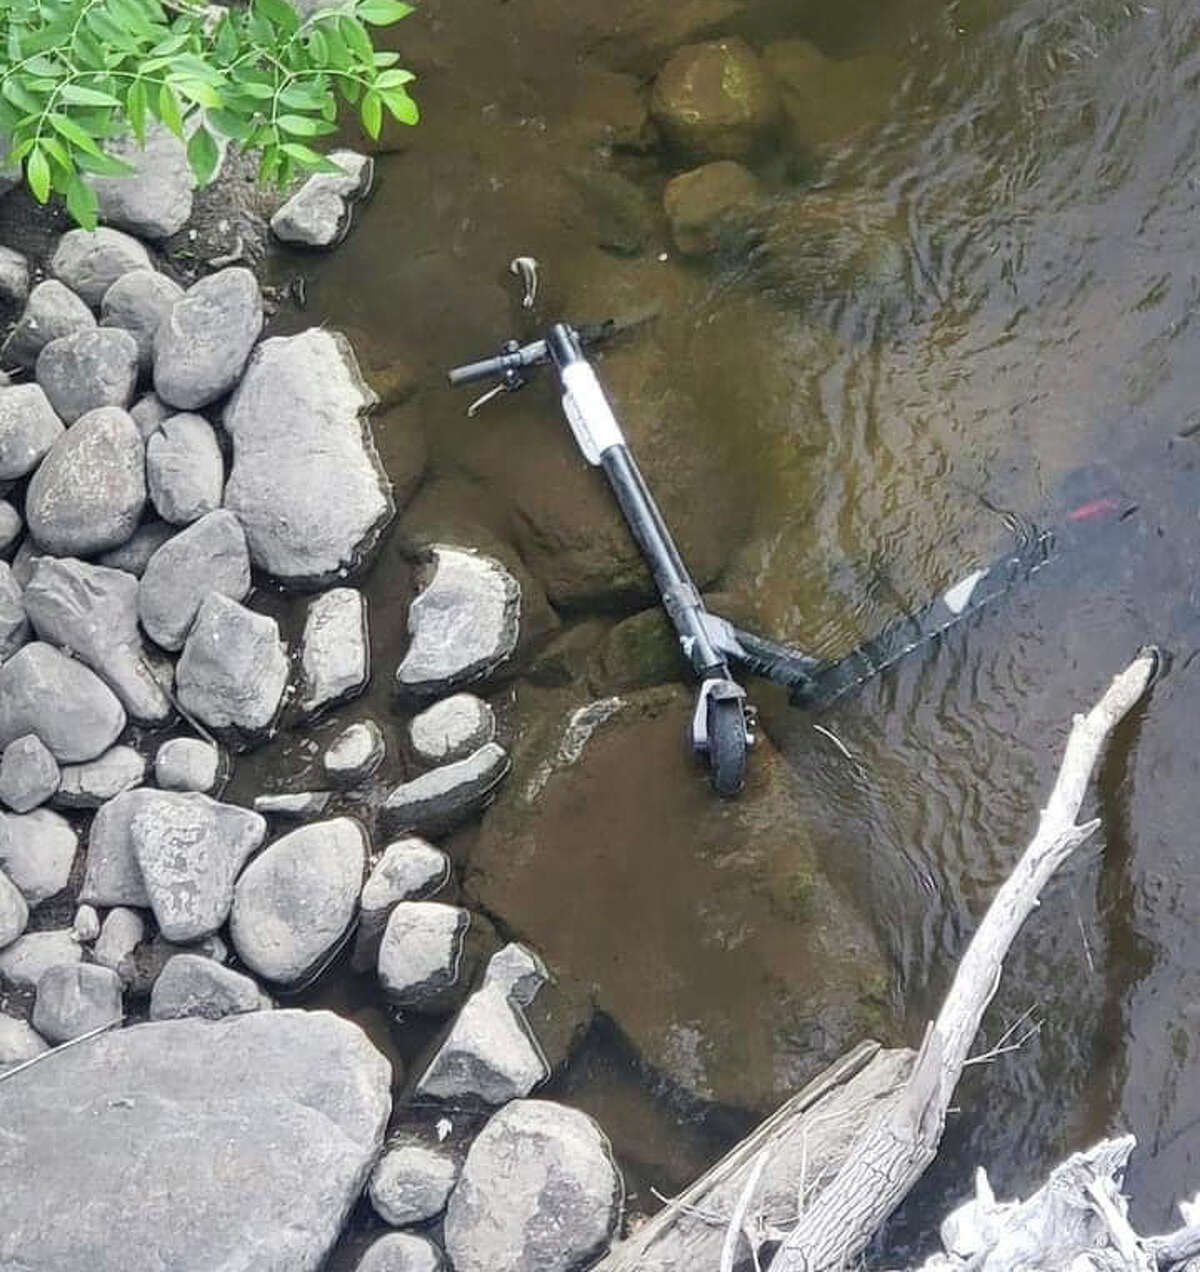 In this photo, submitted to the Pioneer, a Bird scooter is pictured in a portion of Mitchell Creek.